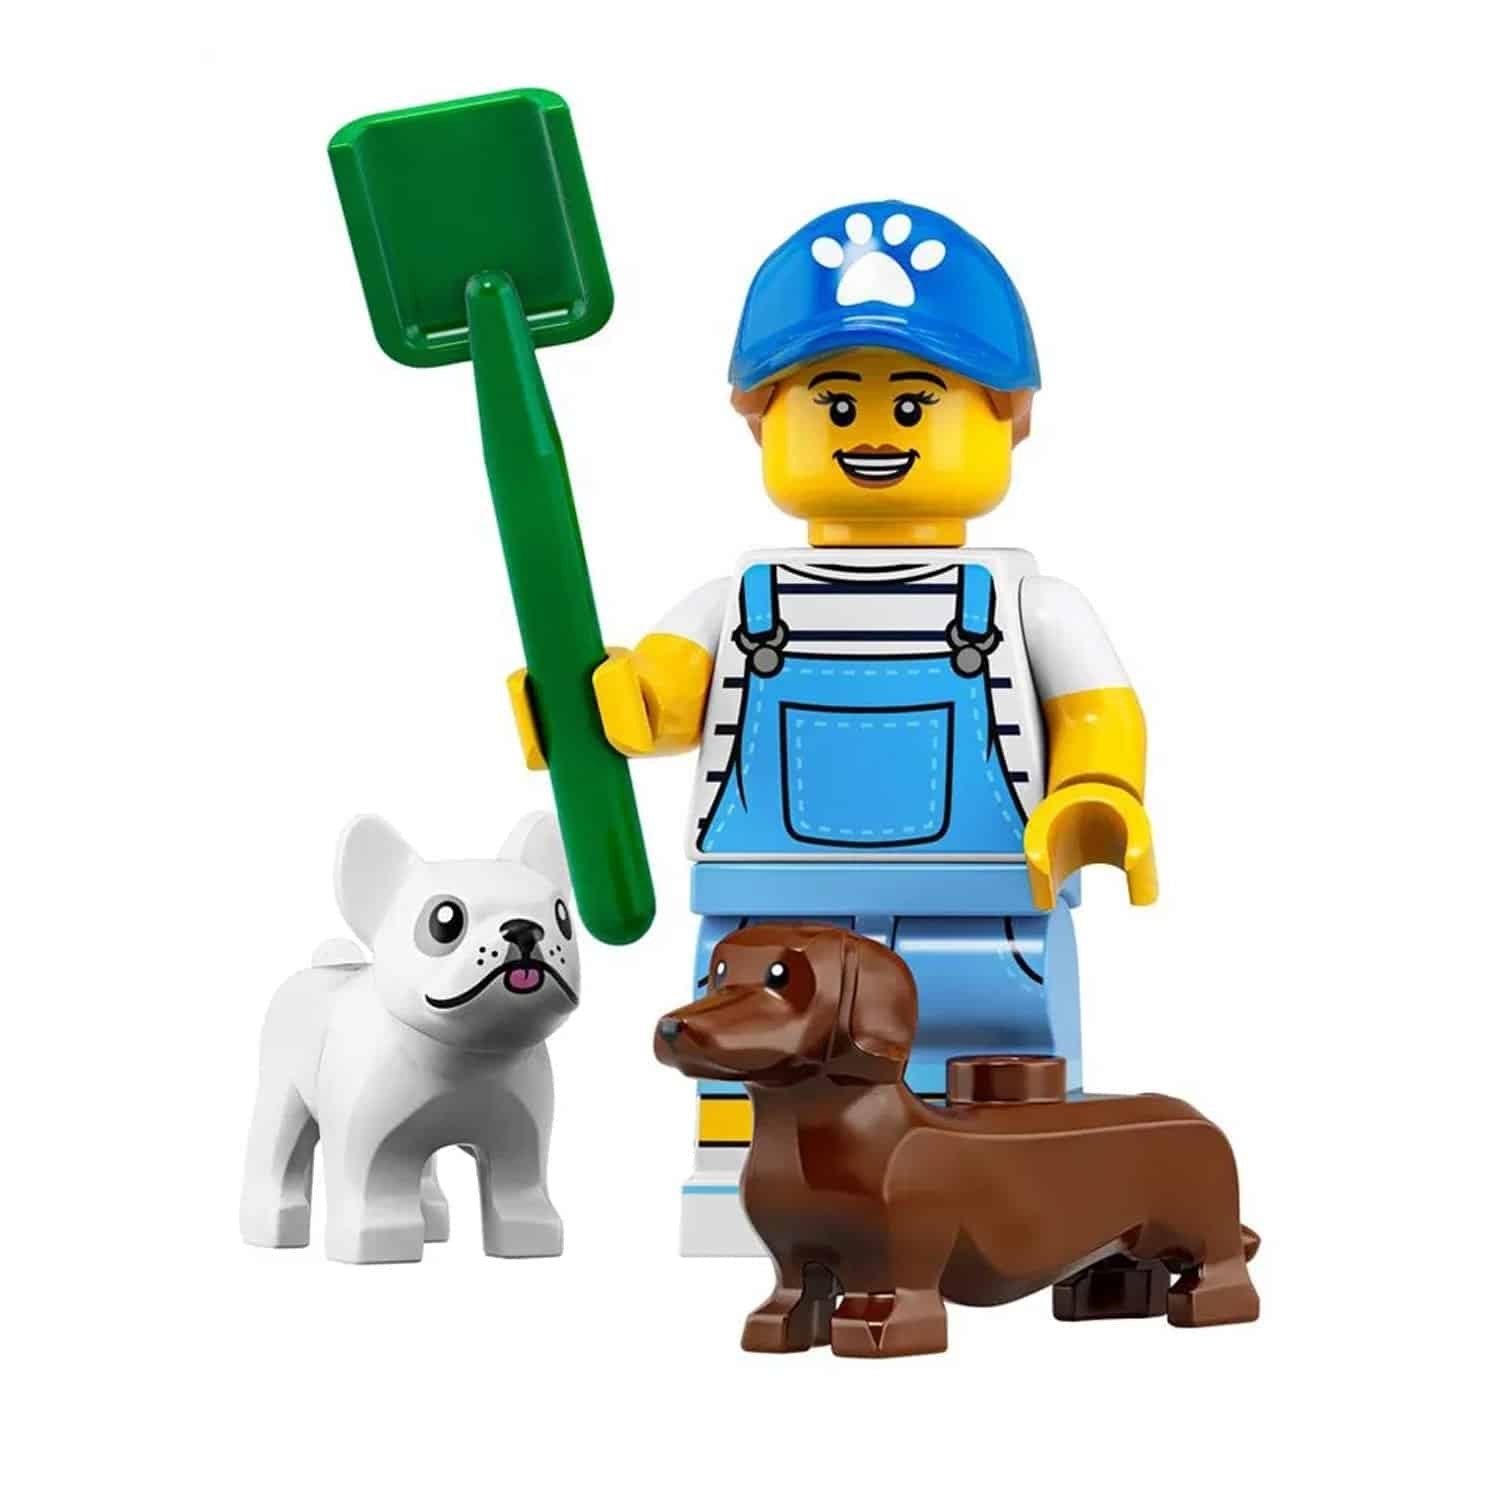 LEGO Dog Sitter Trainer Minifigure and Dogs – Series 19 CMF